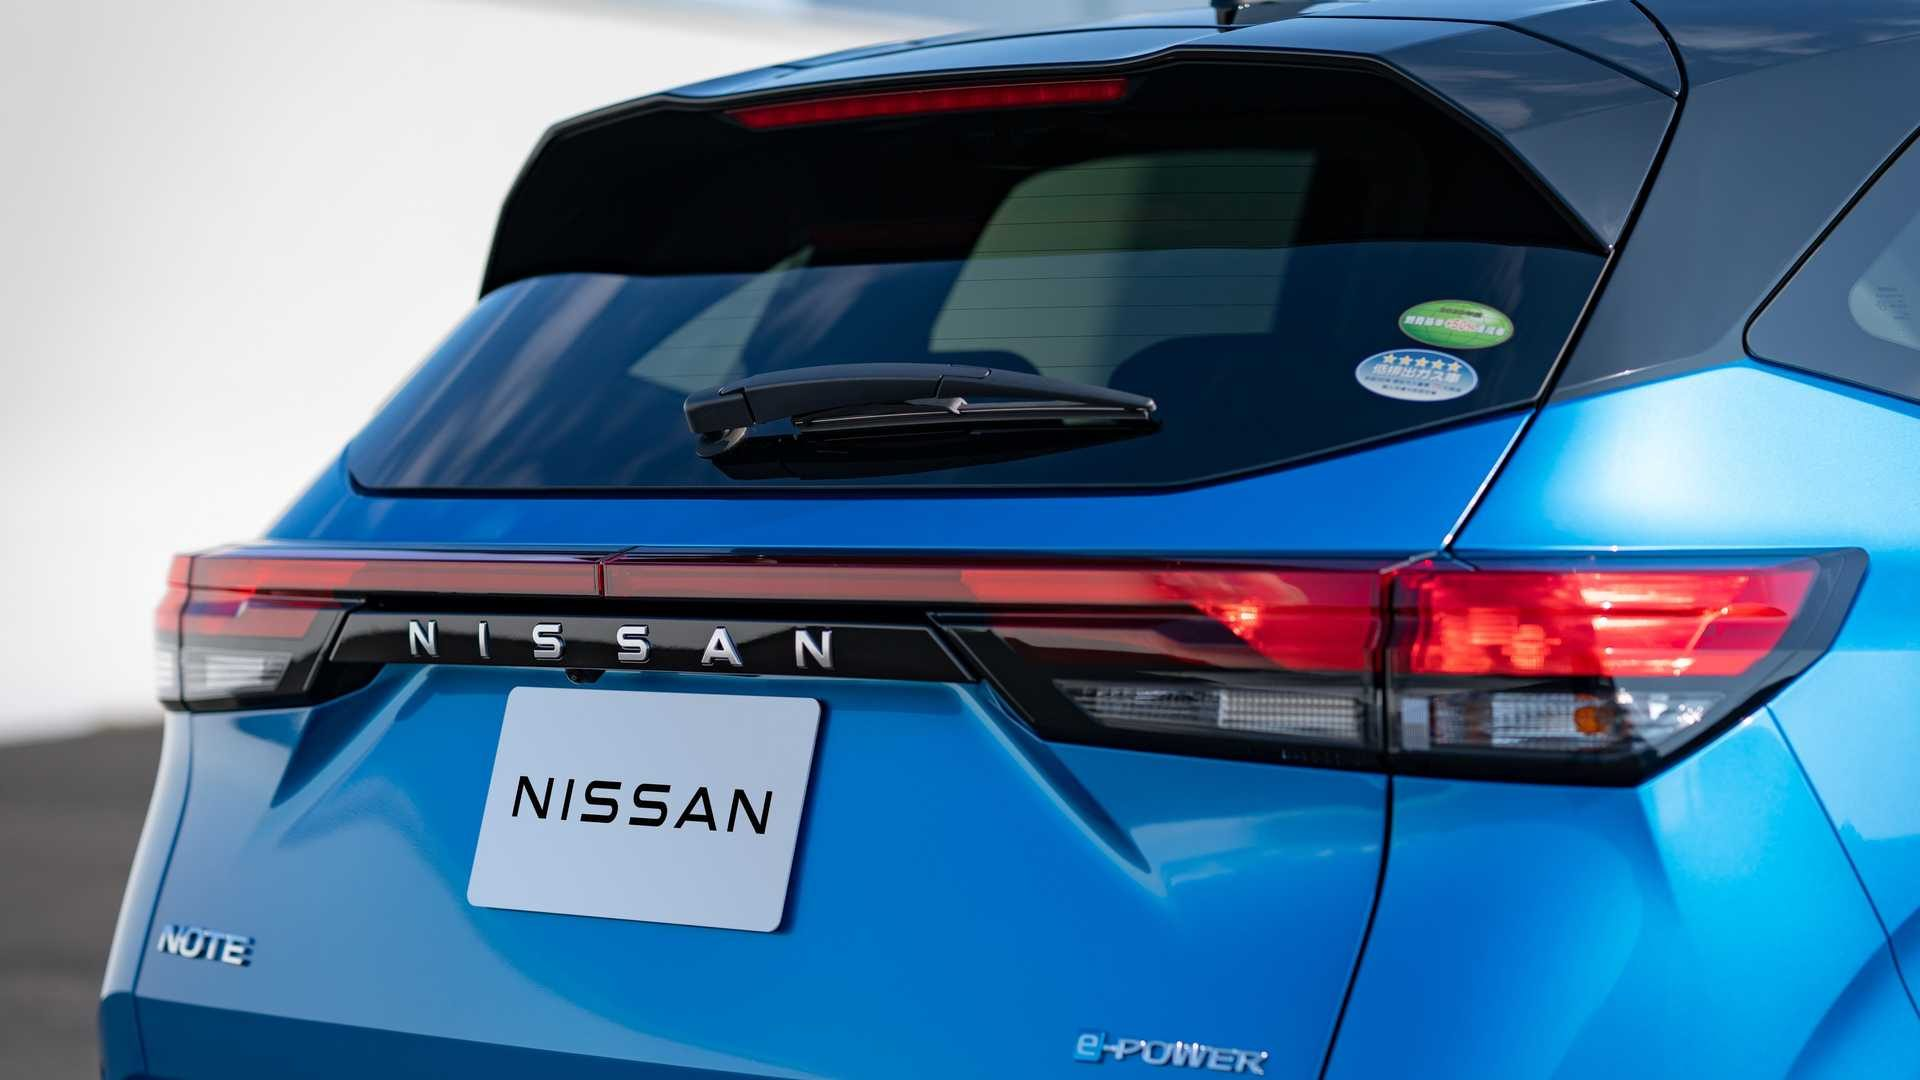 2021-nissan-note (8)